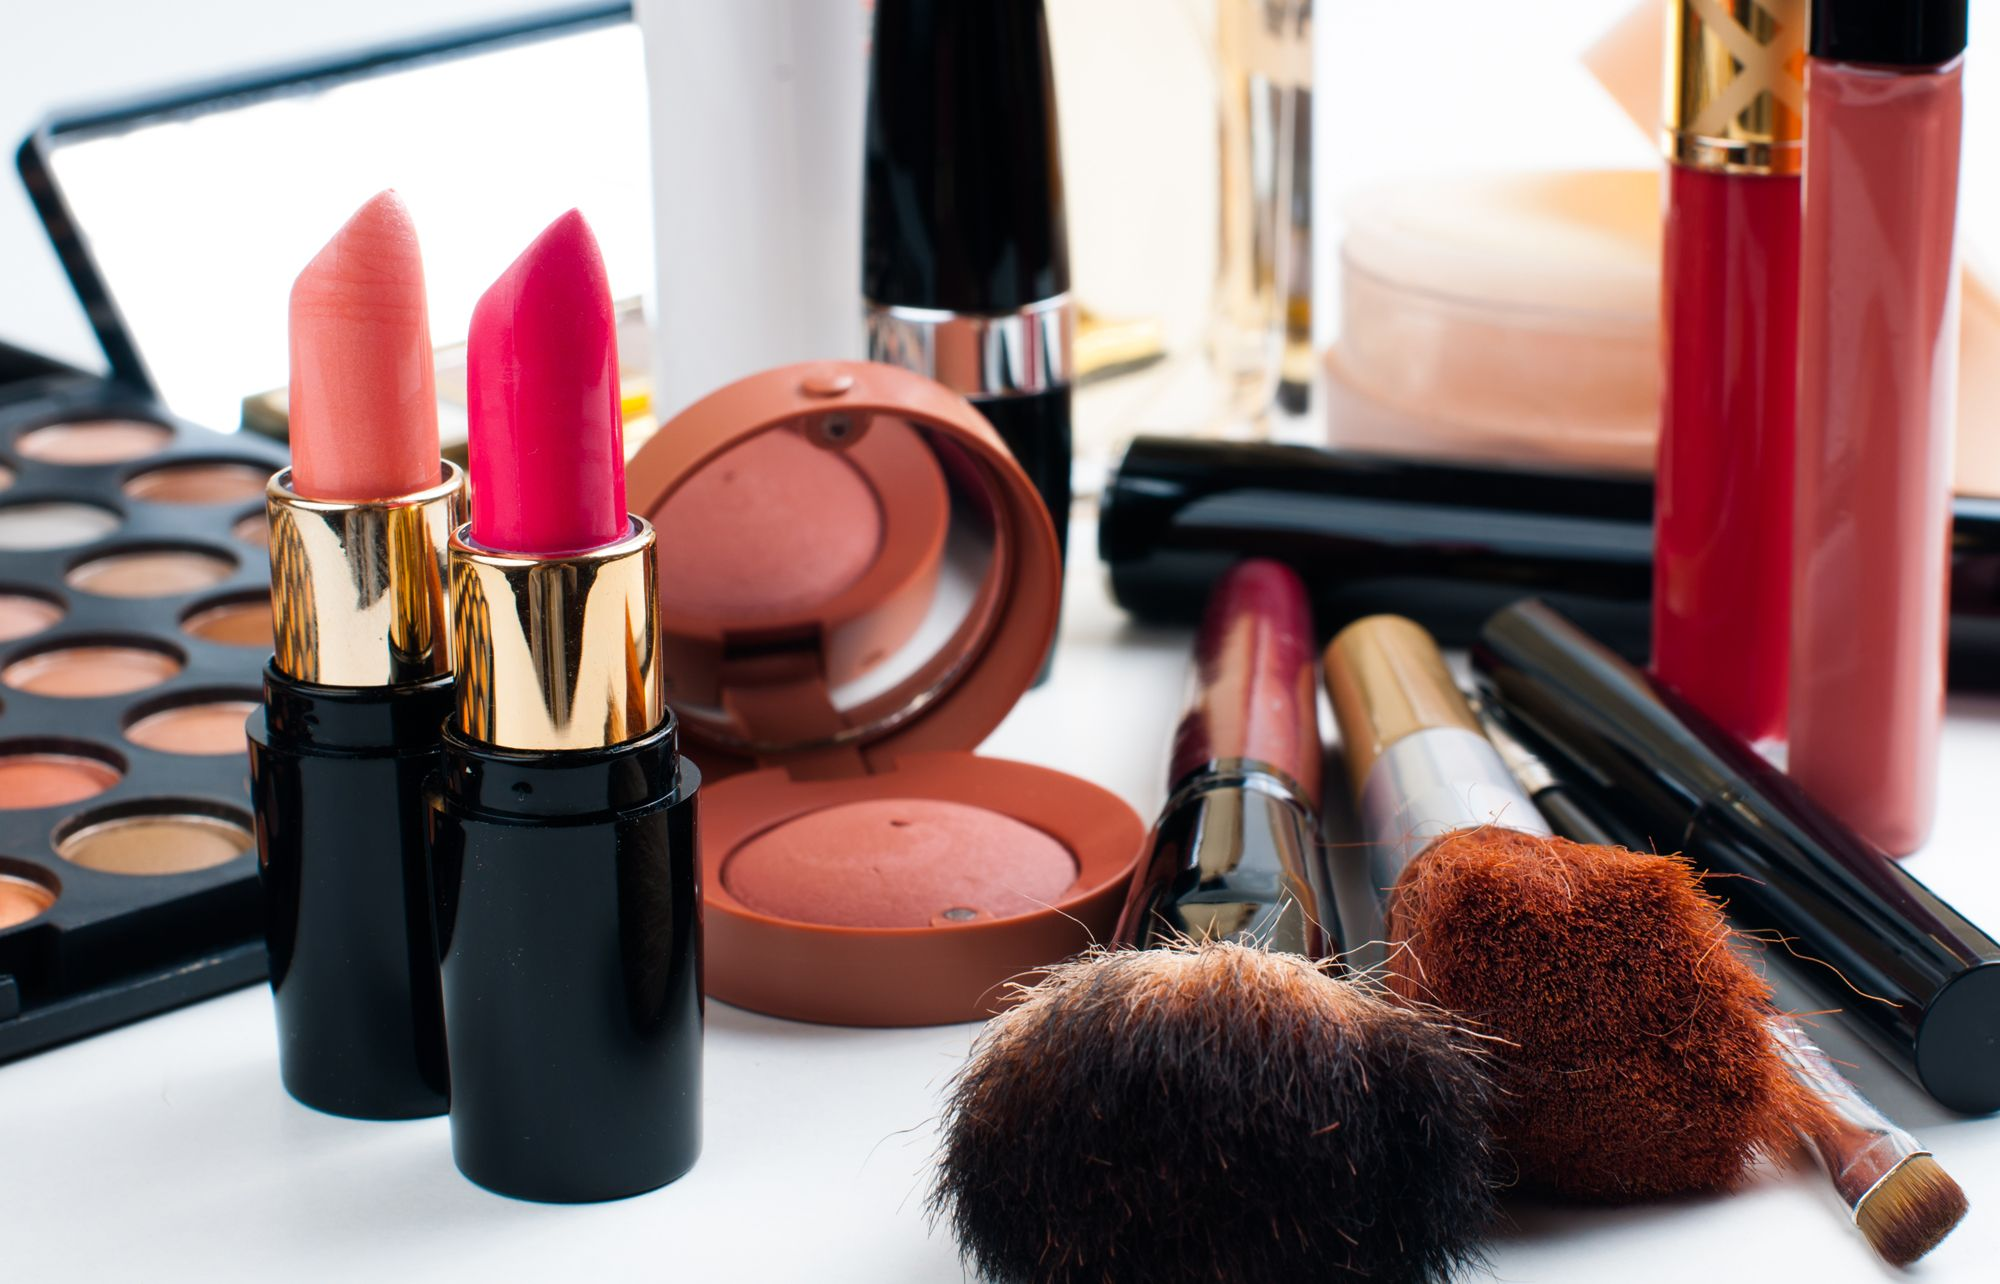 Buy Best Quality Beauty Products Made in Hong Kong